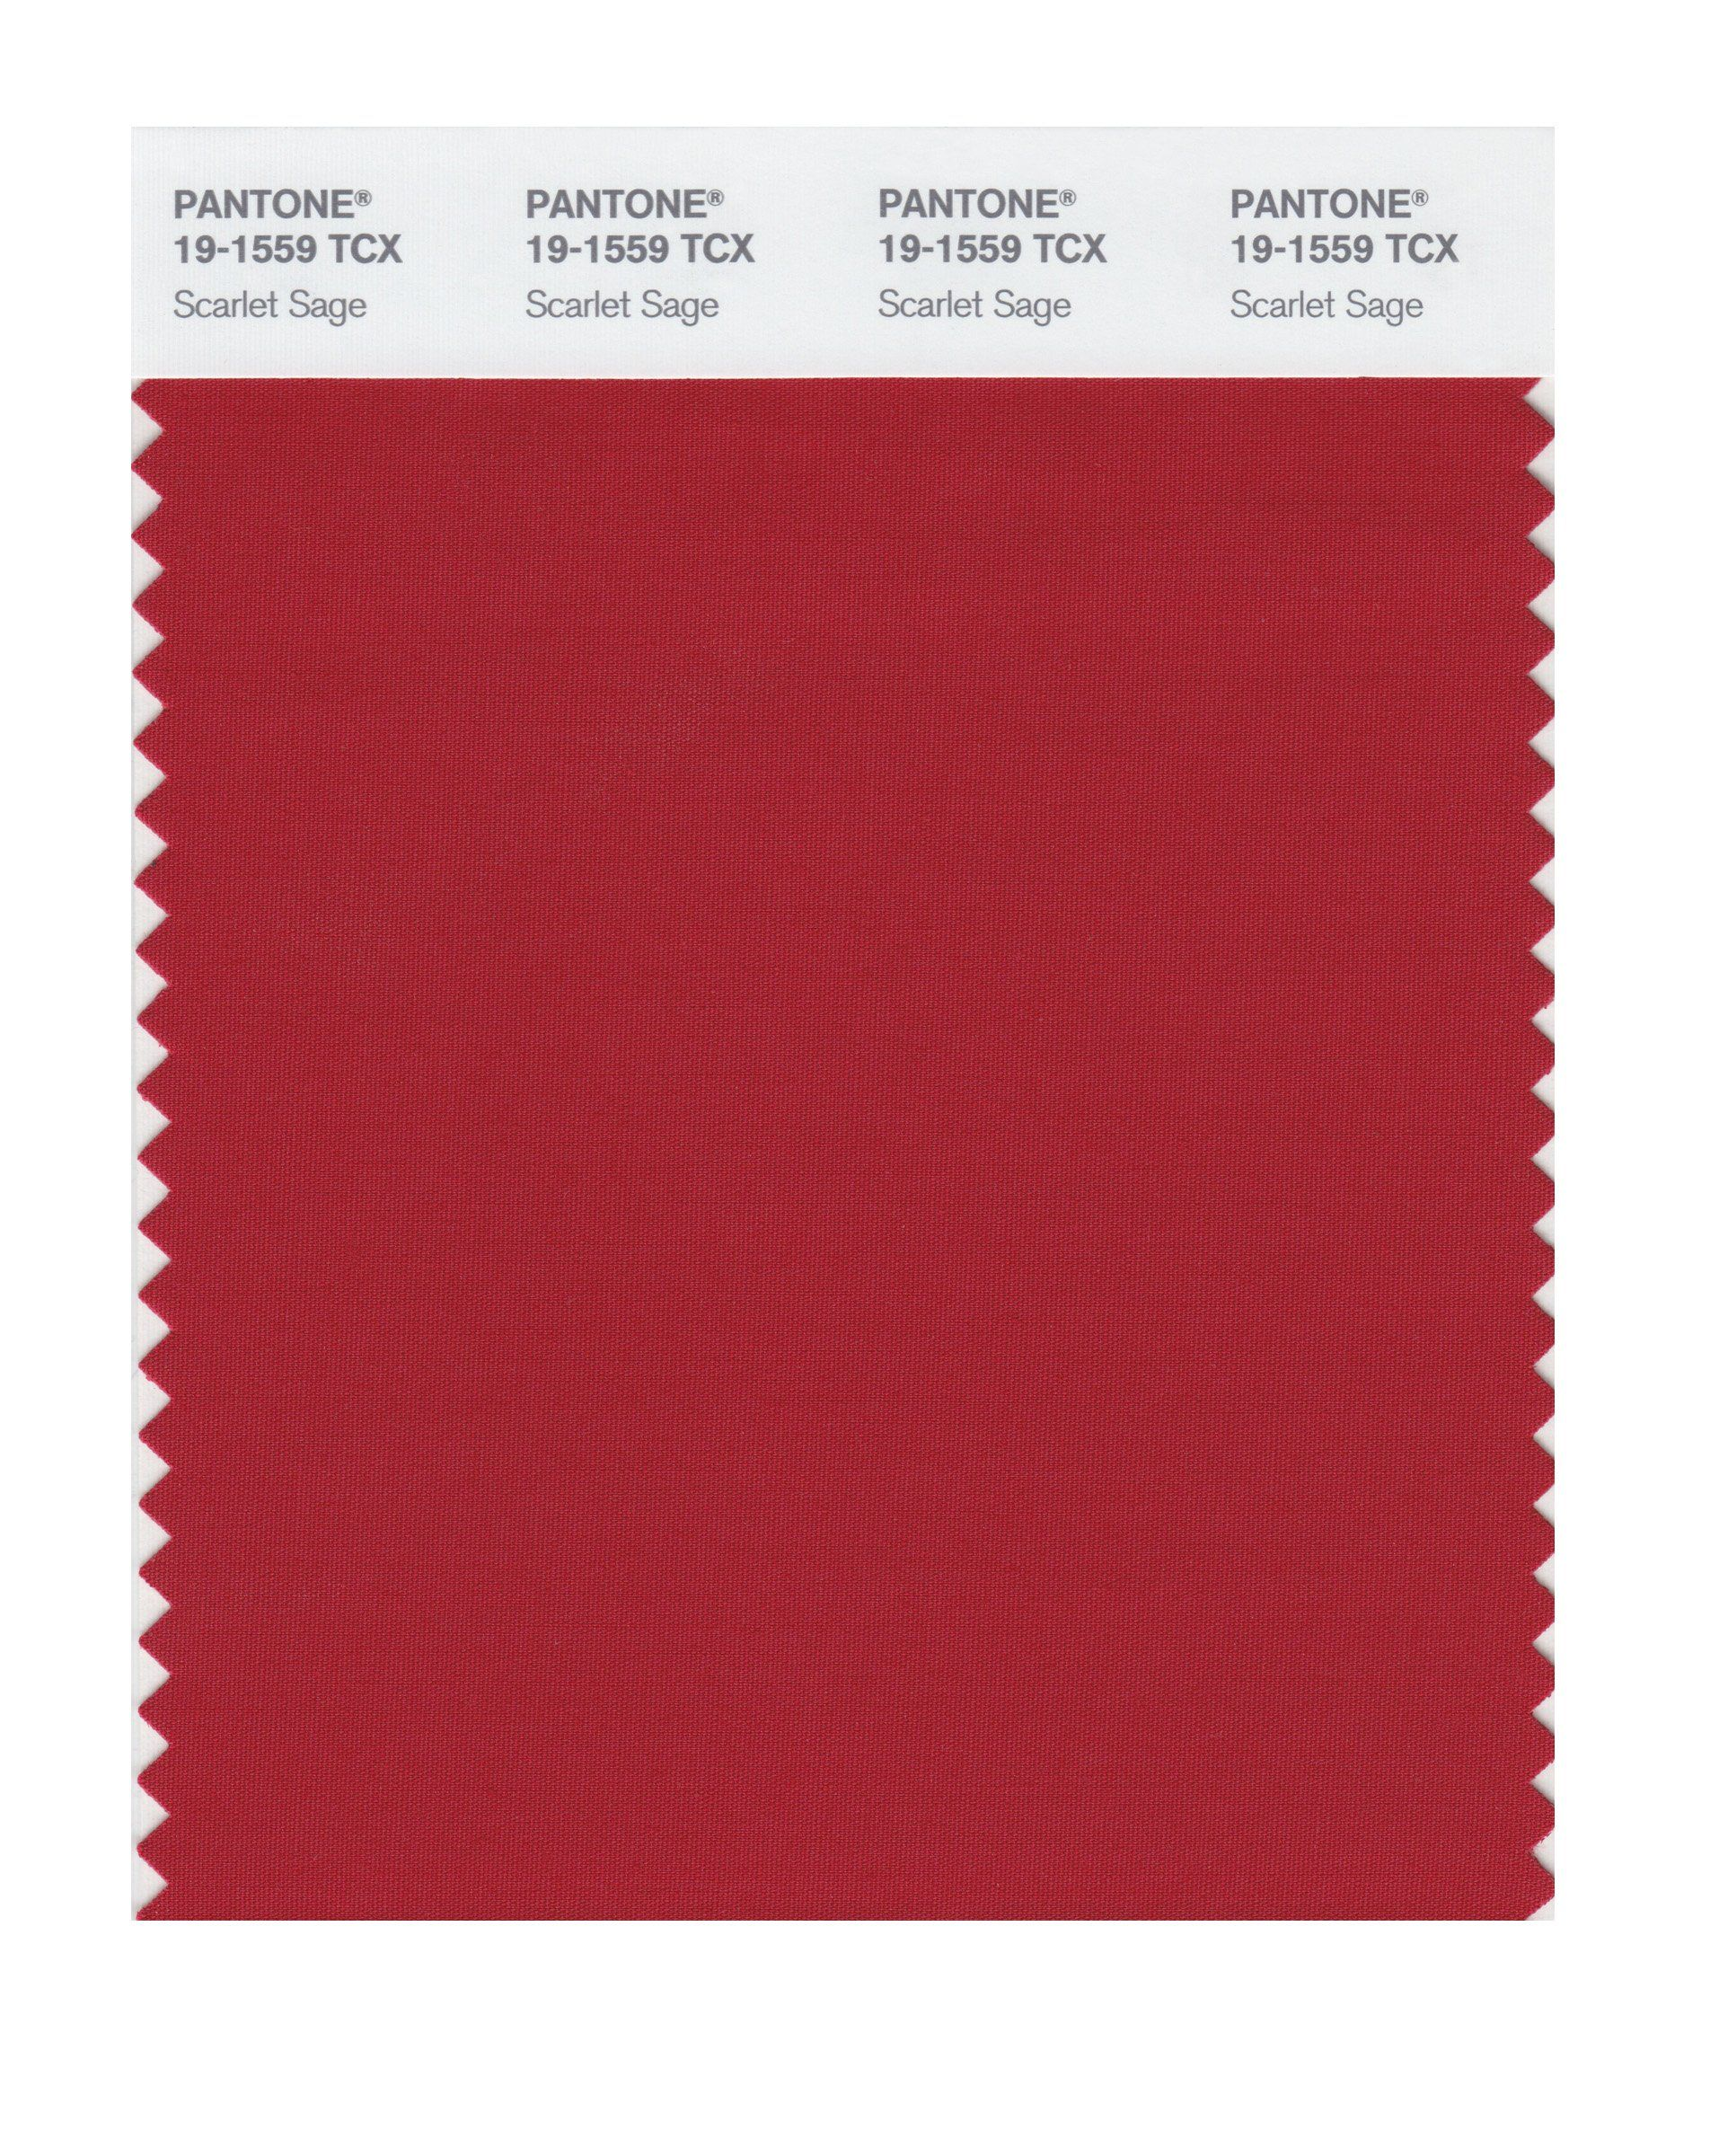 Amazoncom Pantone 19 1758 Tcx Smart Color Swatch Card, Haute Red